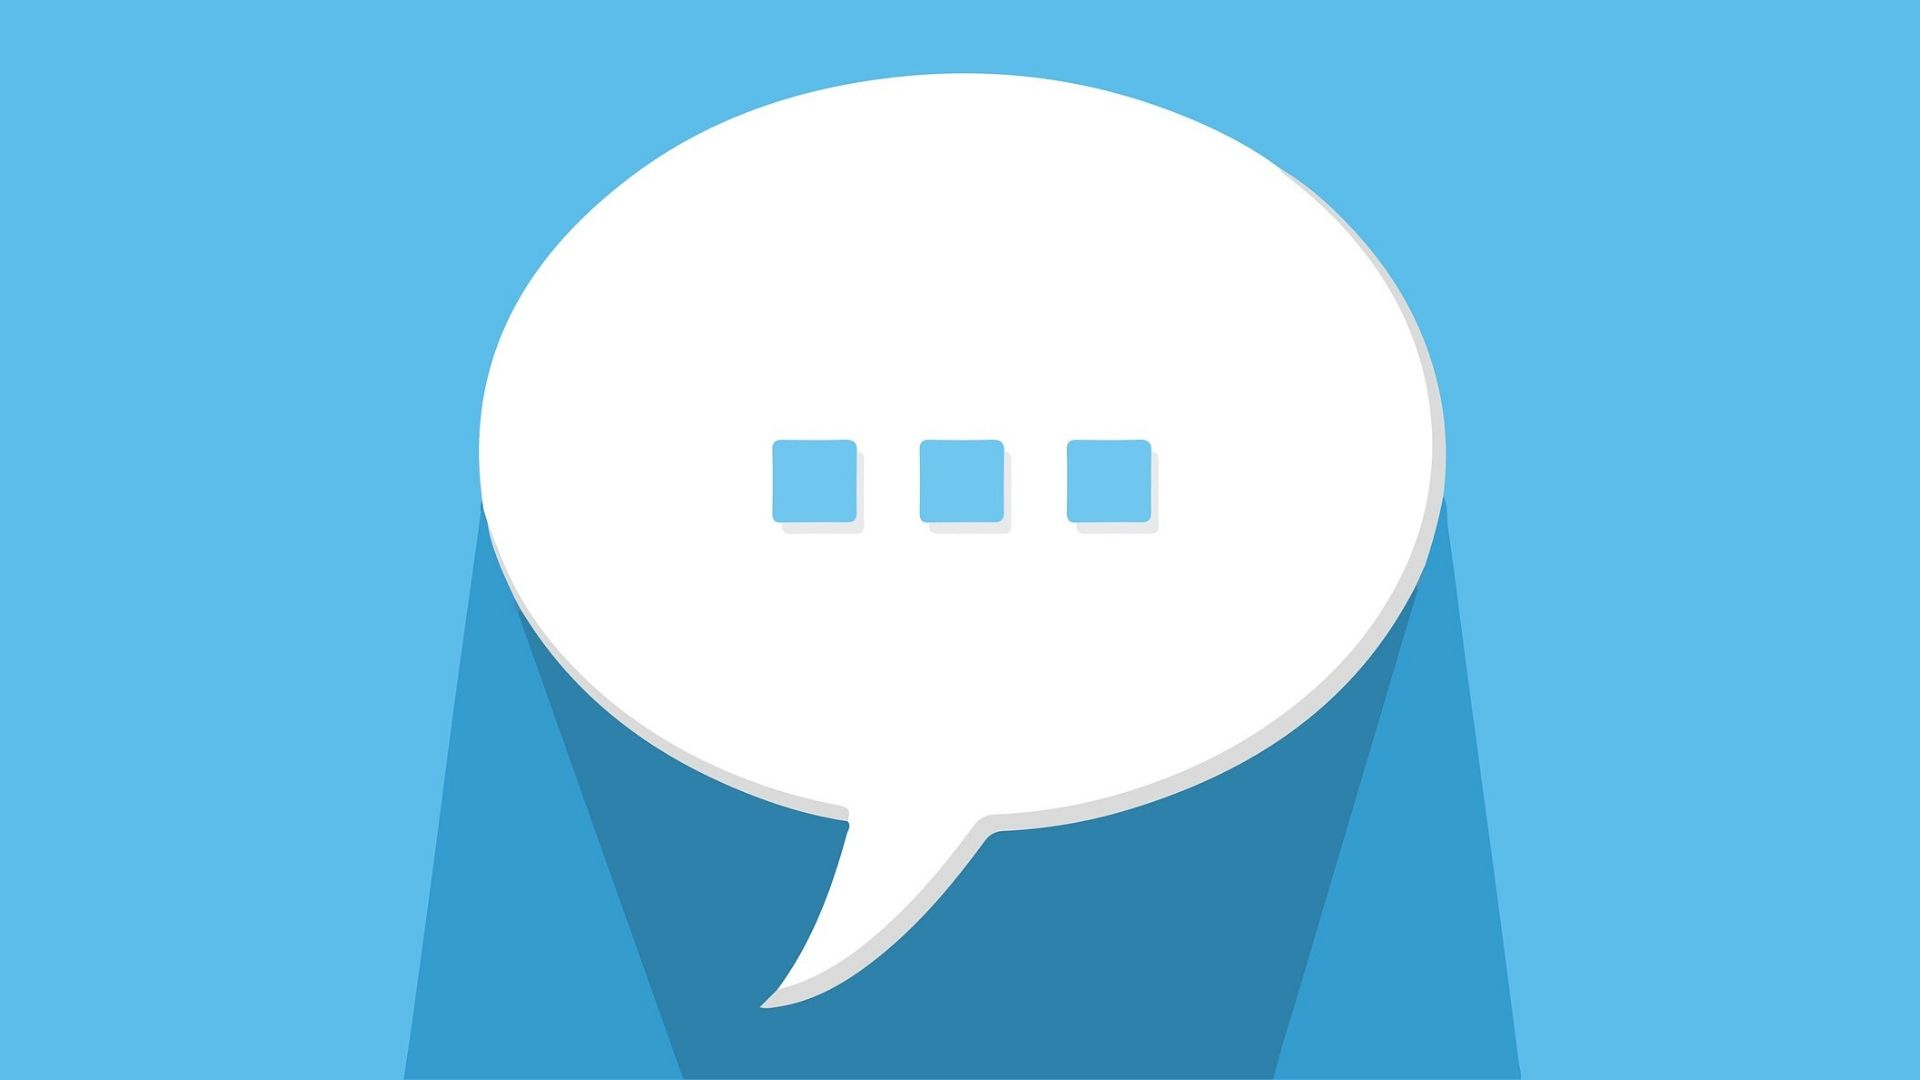 Could You Improve Customer Communication During a Crisis?